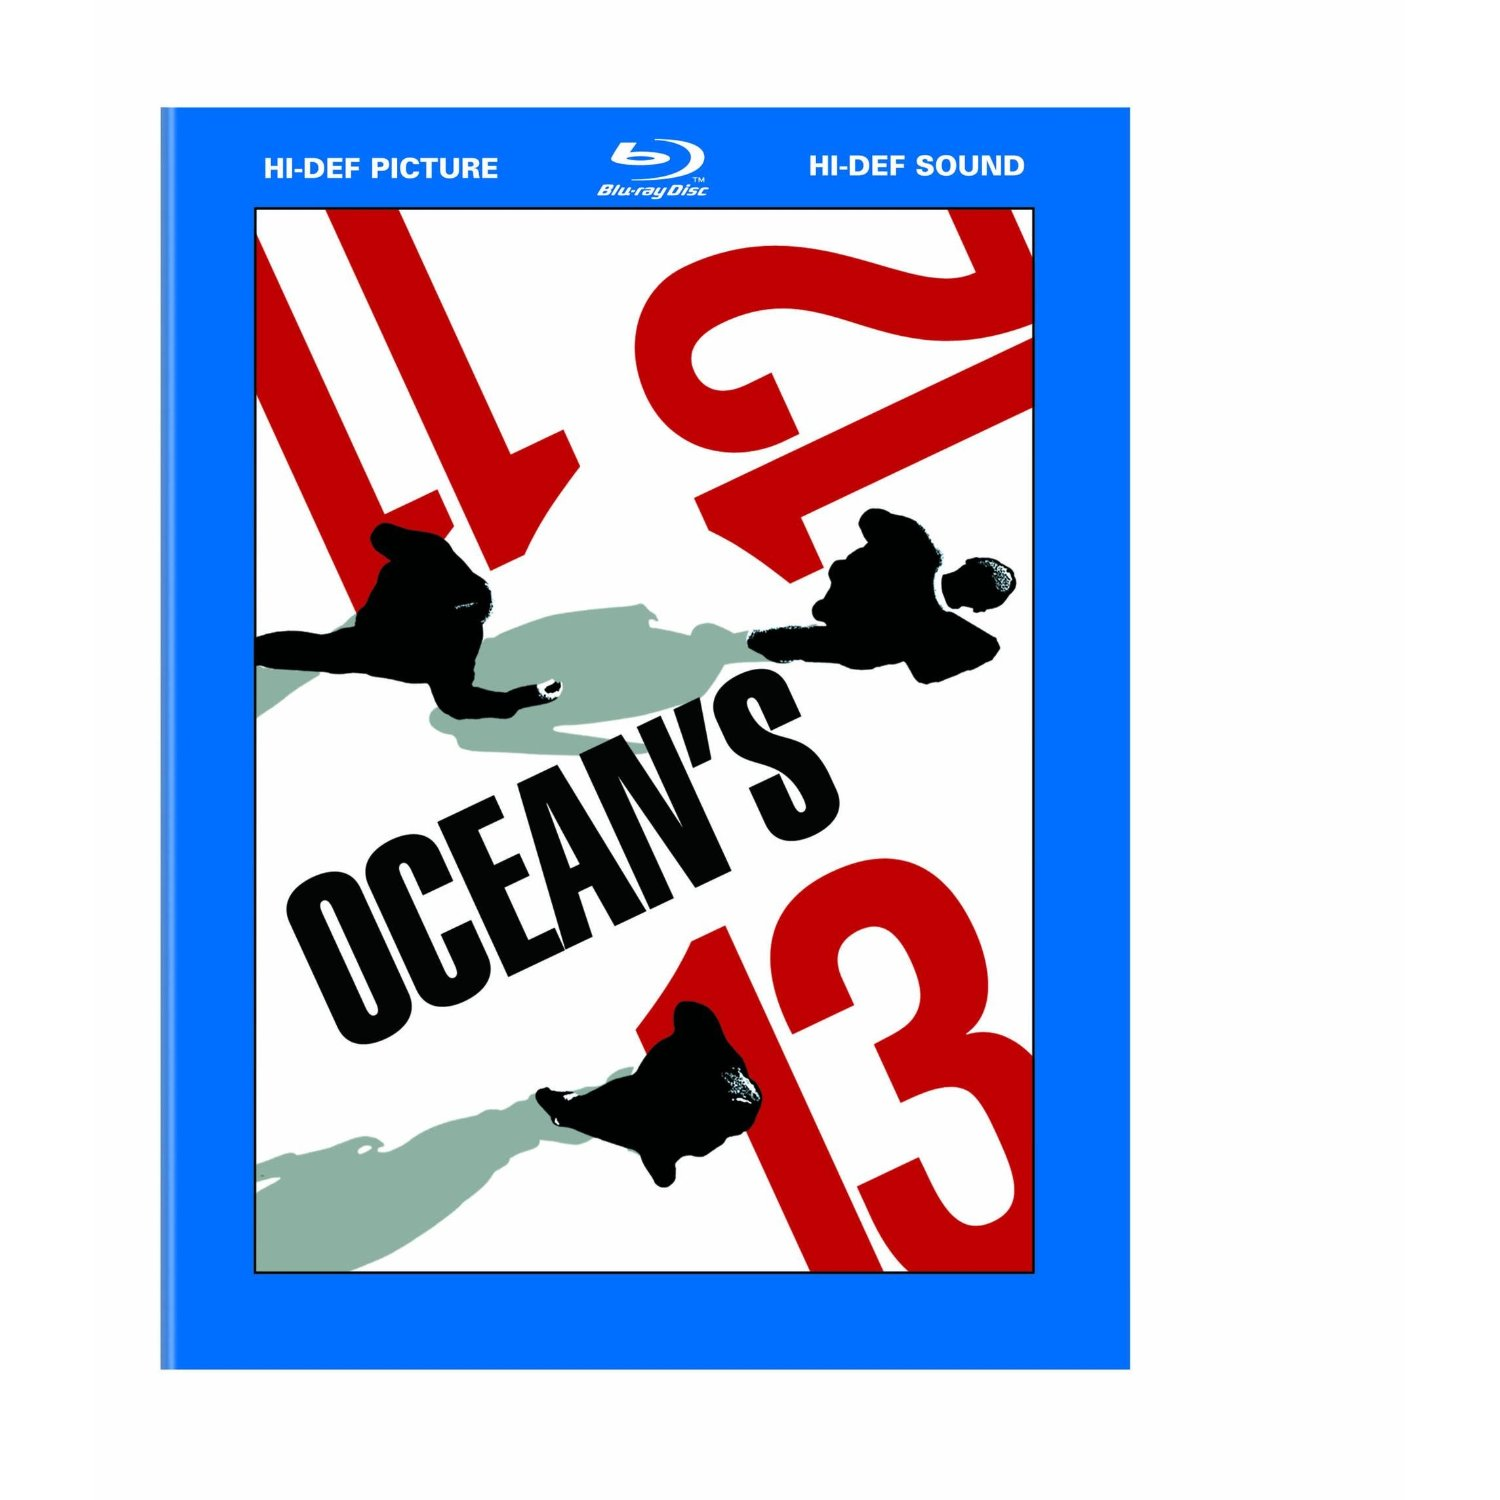 oceans trilogy on dvd